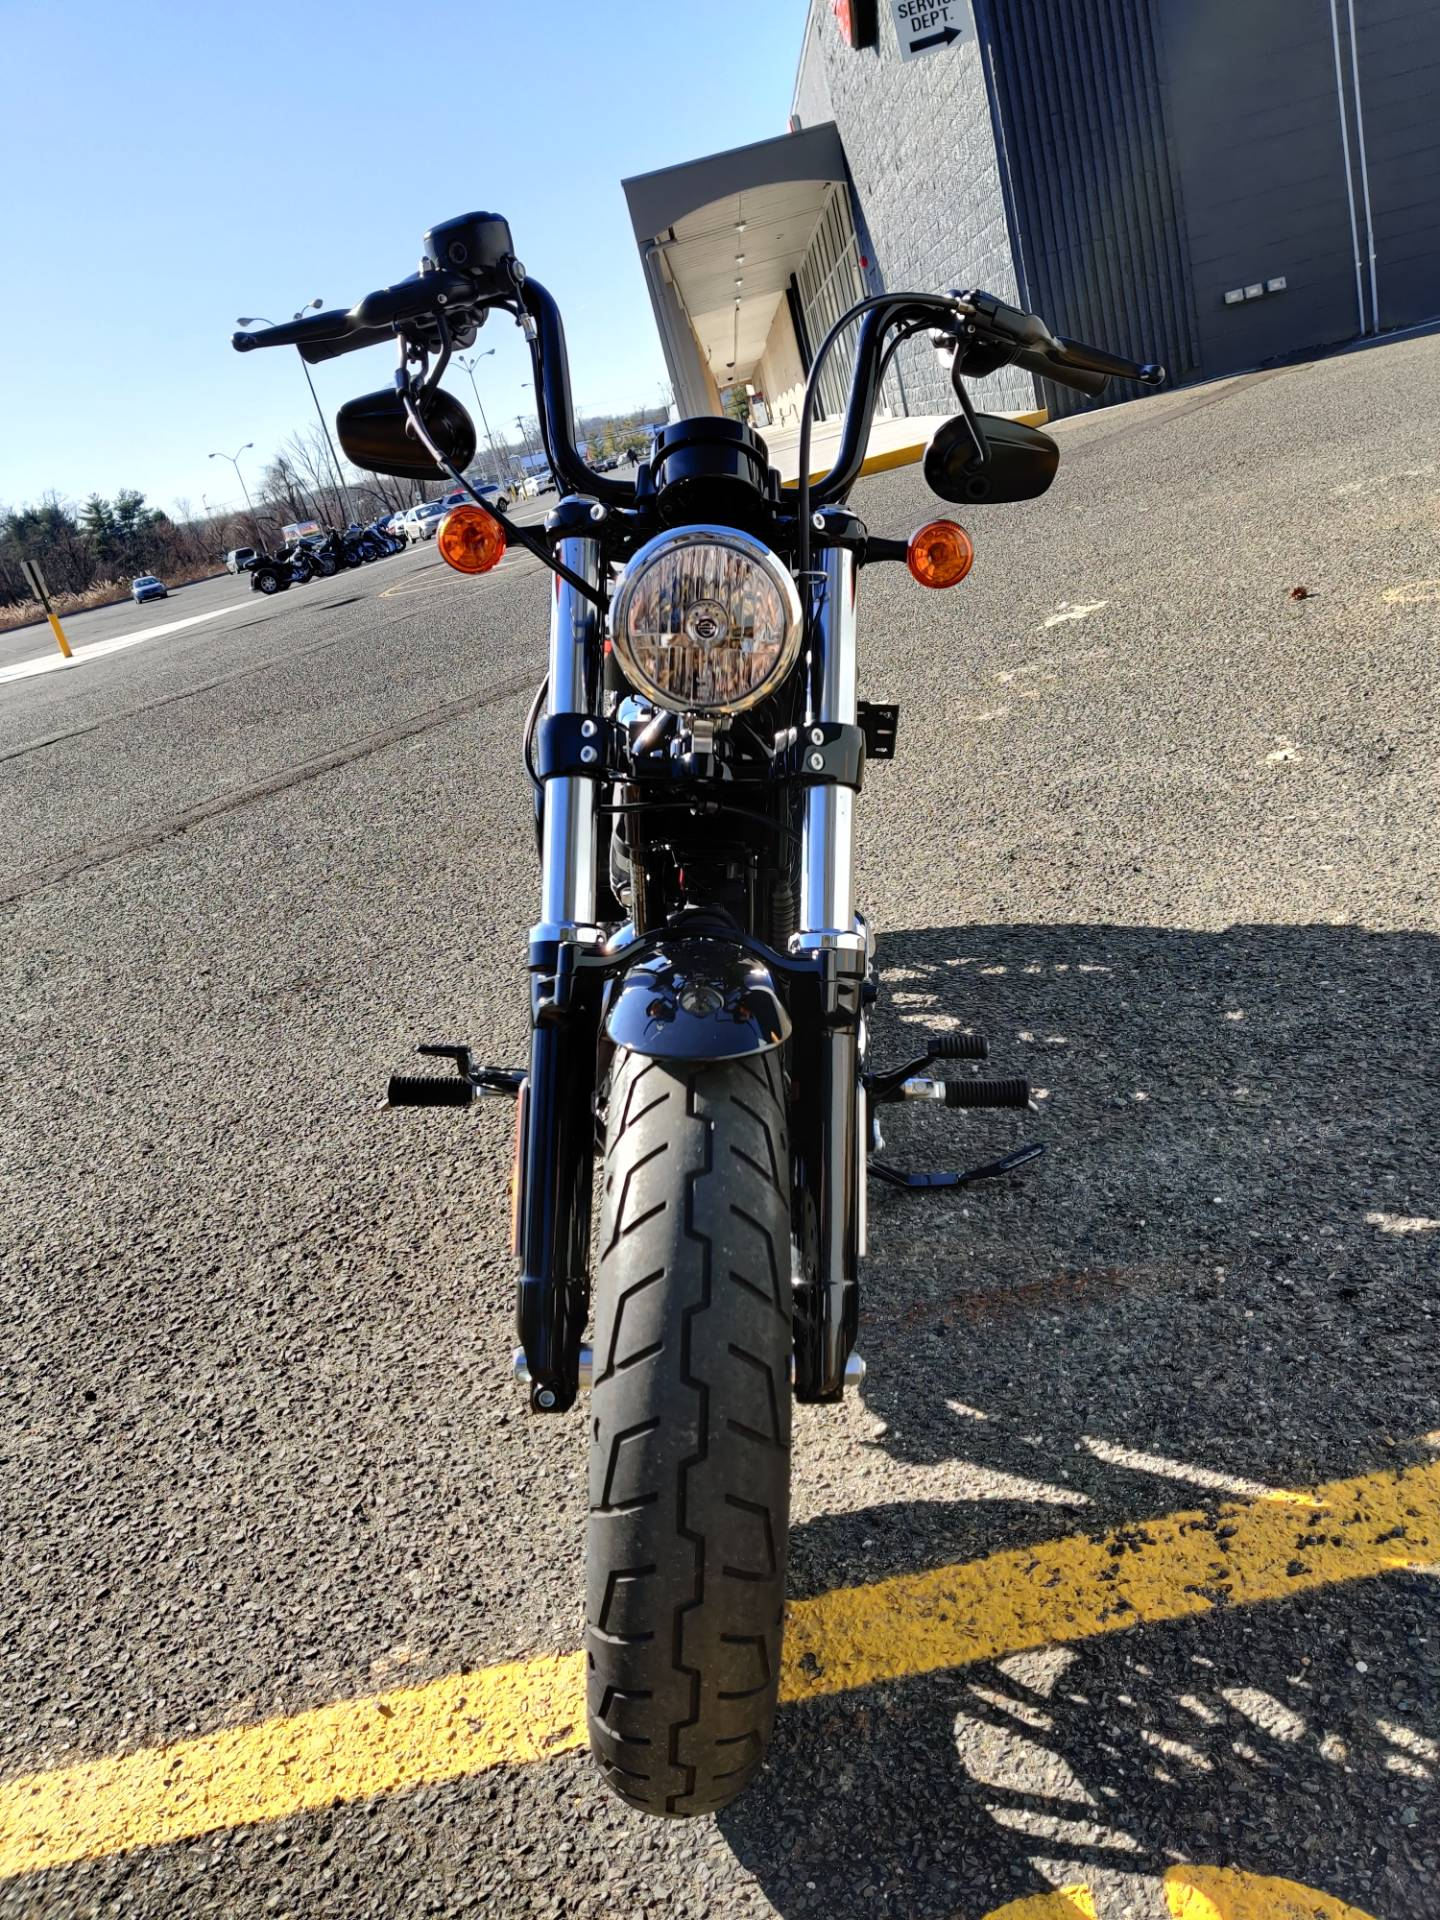 2018 Harley-Davidson Forty-Eight Special in West Long Branch, New Jersey - Photo 4